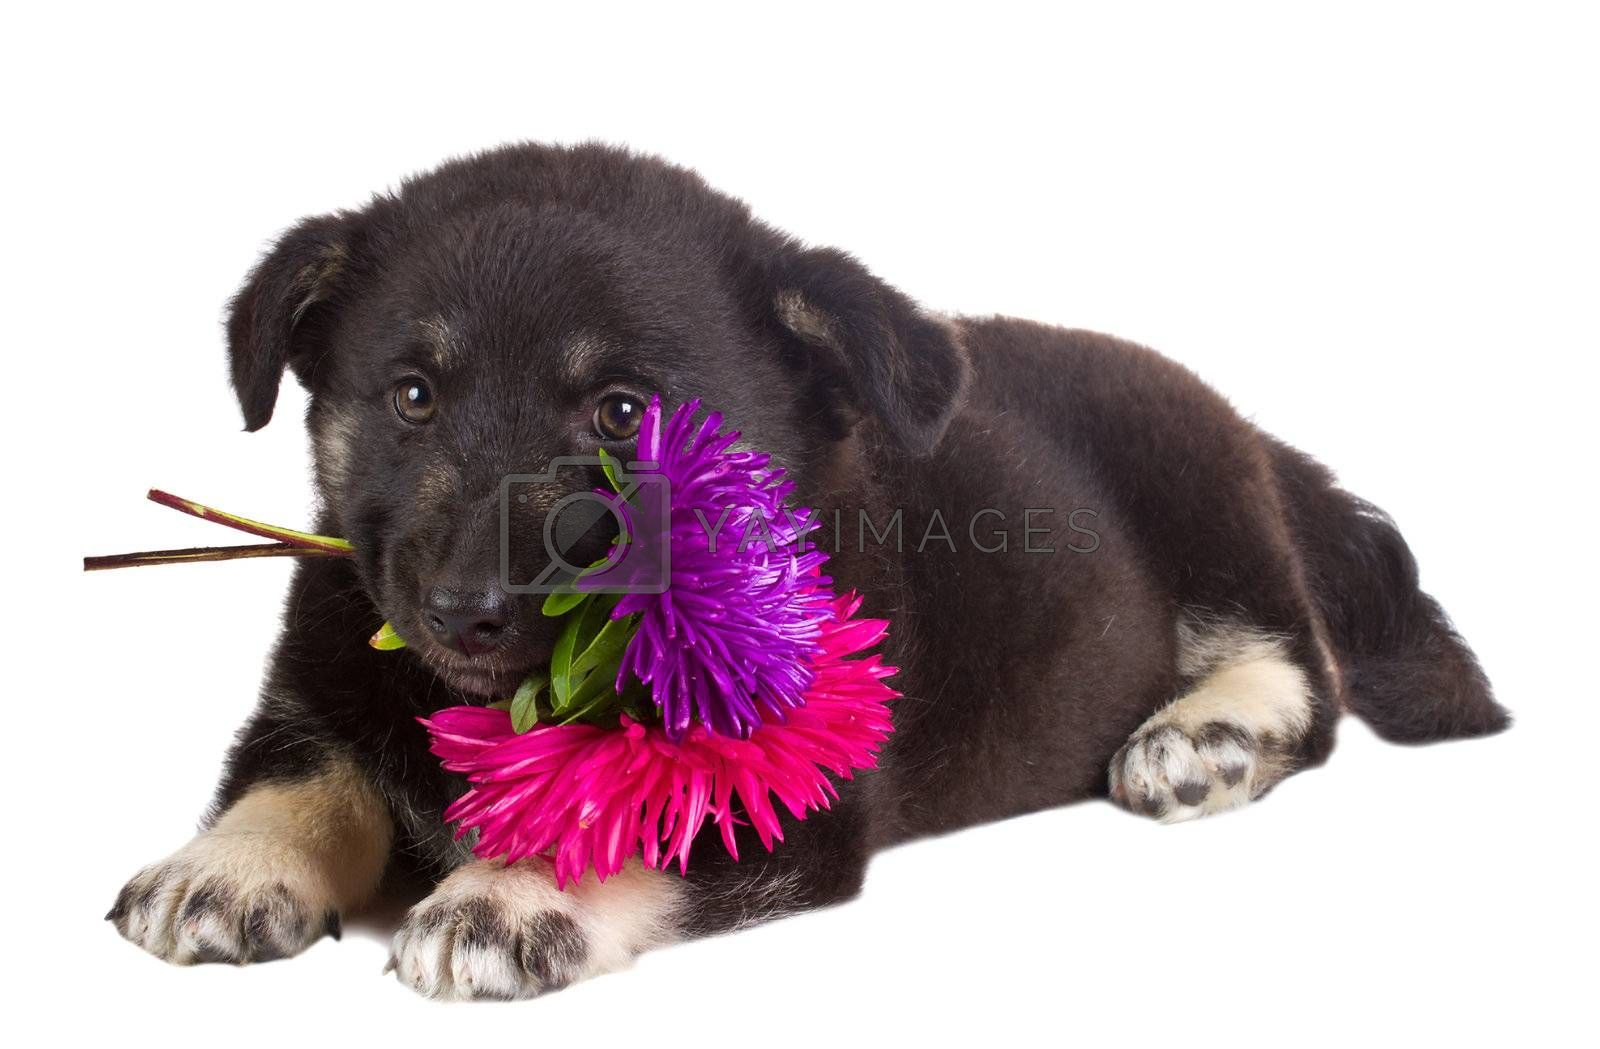 close-up puppy holding flowers, isolated on white